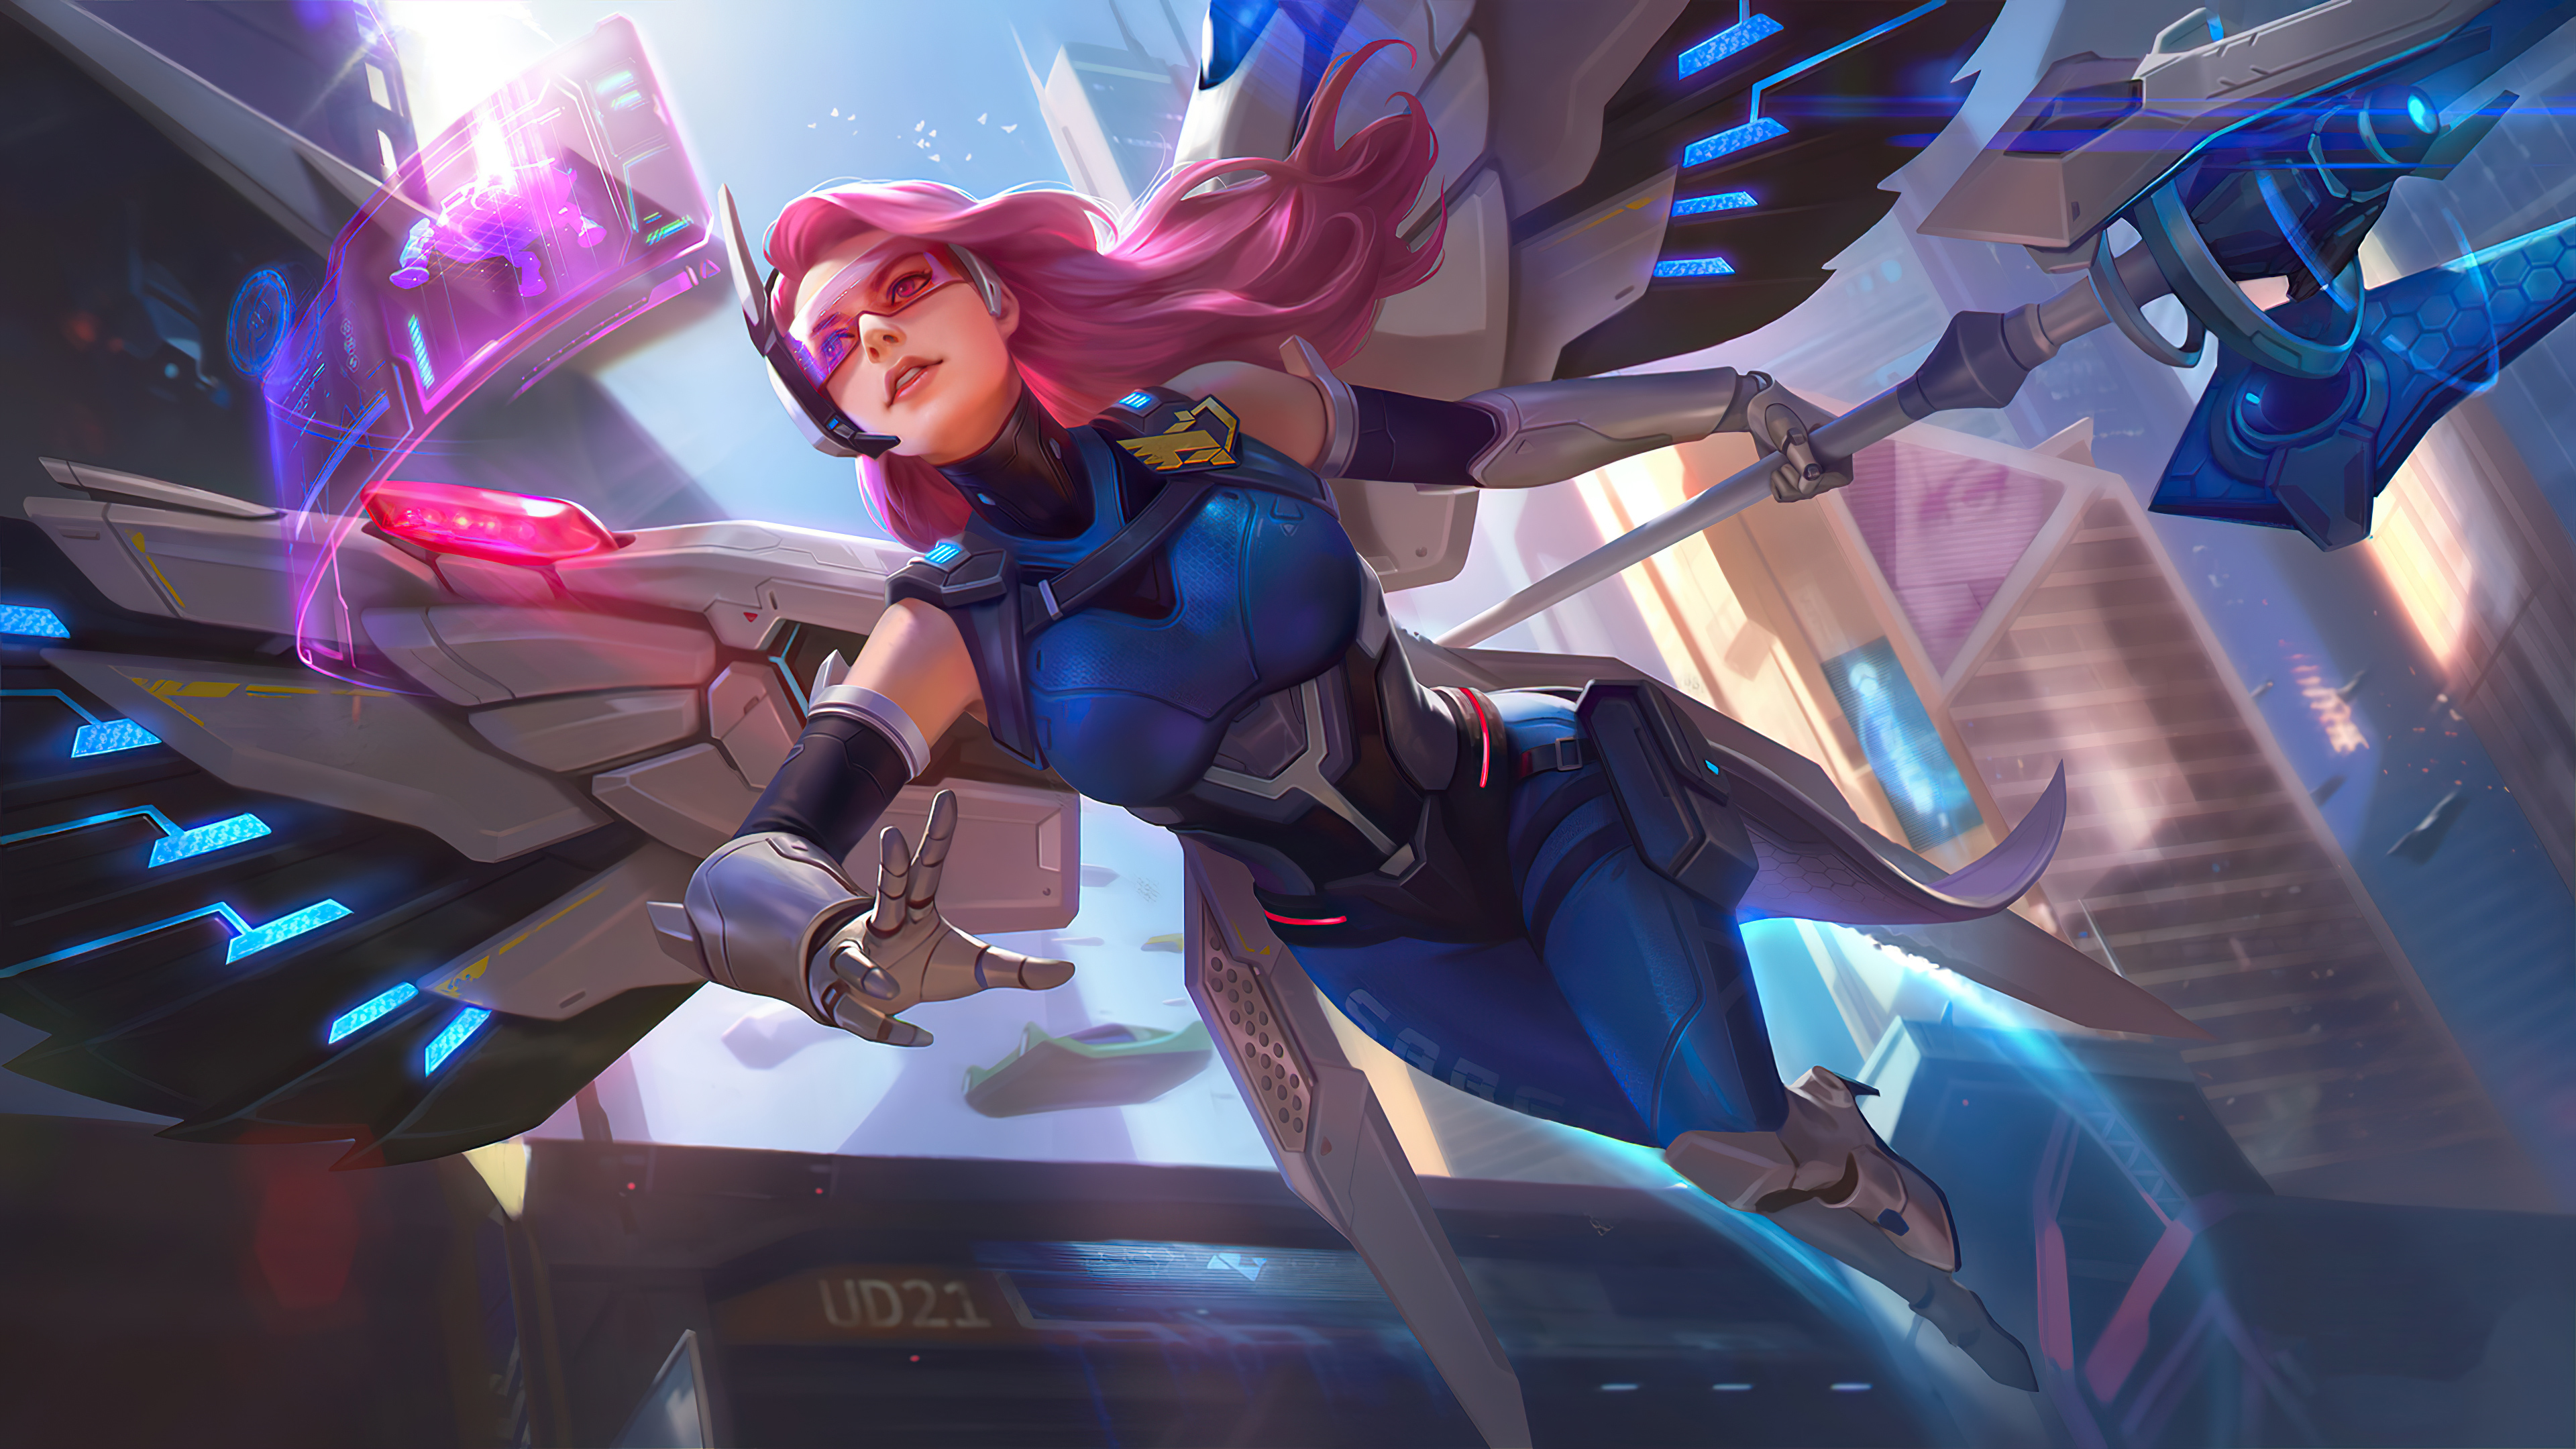 1920x1080 2020 Mobile Legends 4k Laptop Full Hd 1080p Hd 4k Wallpapers Images Backgrounds Photos And Pictures